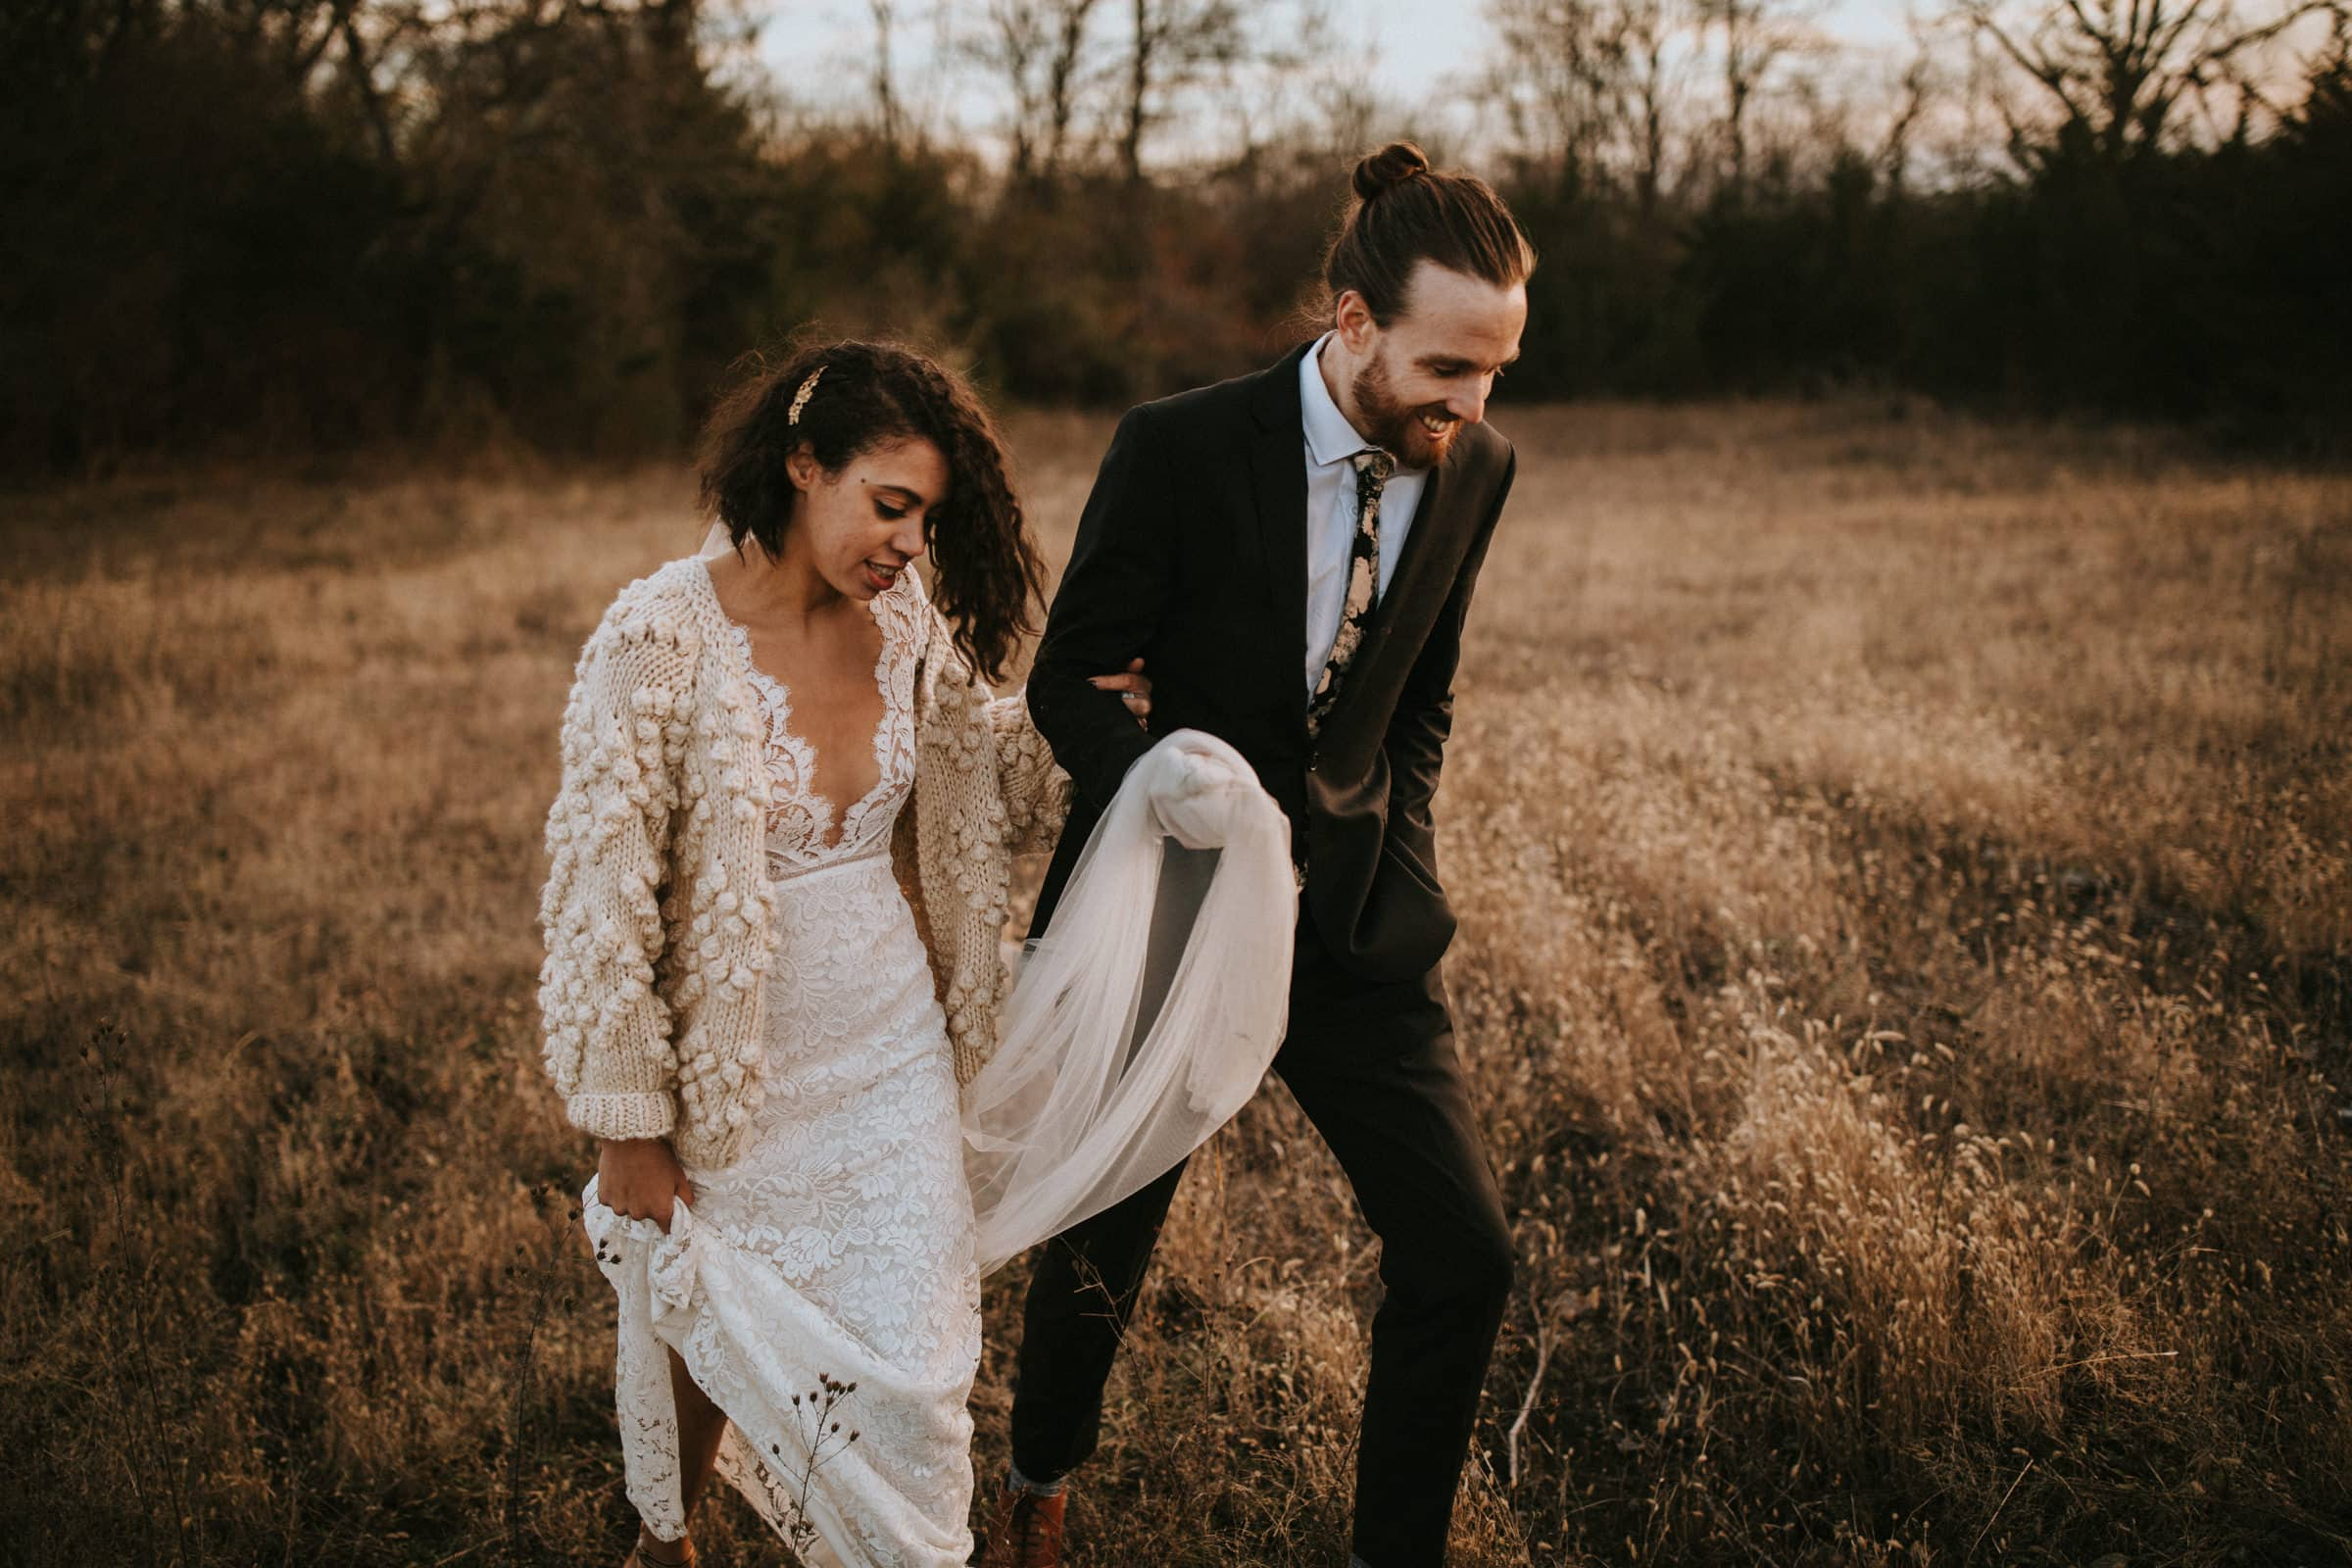 The wedding couple is walking through a dry meadow.